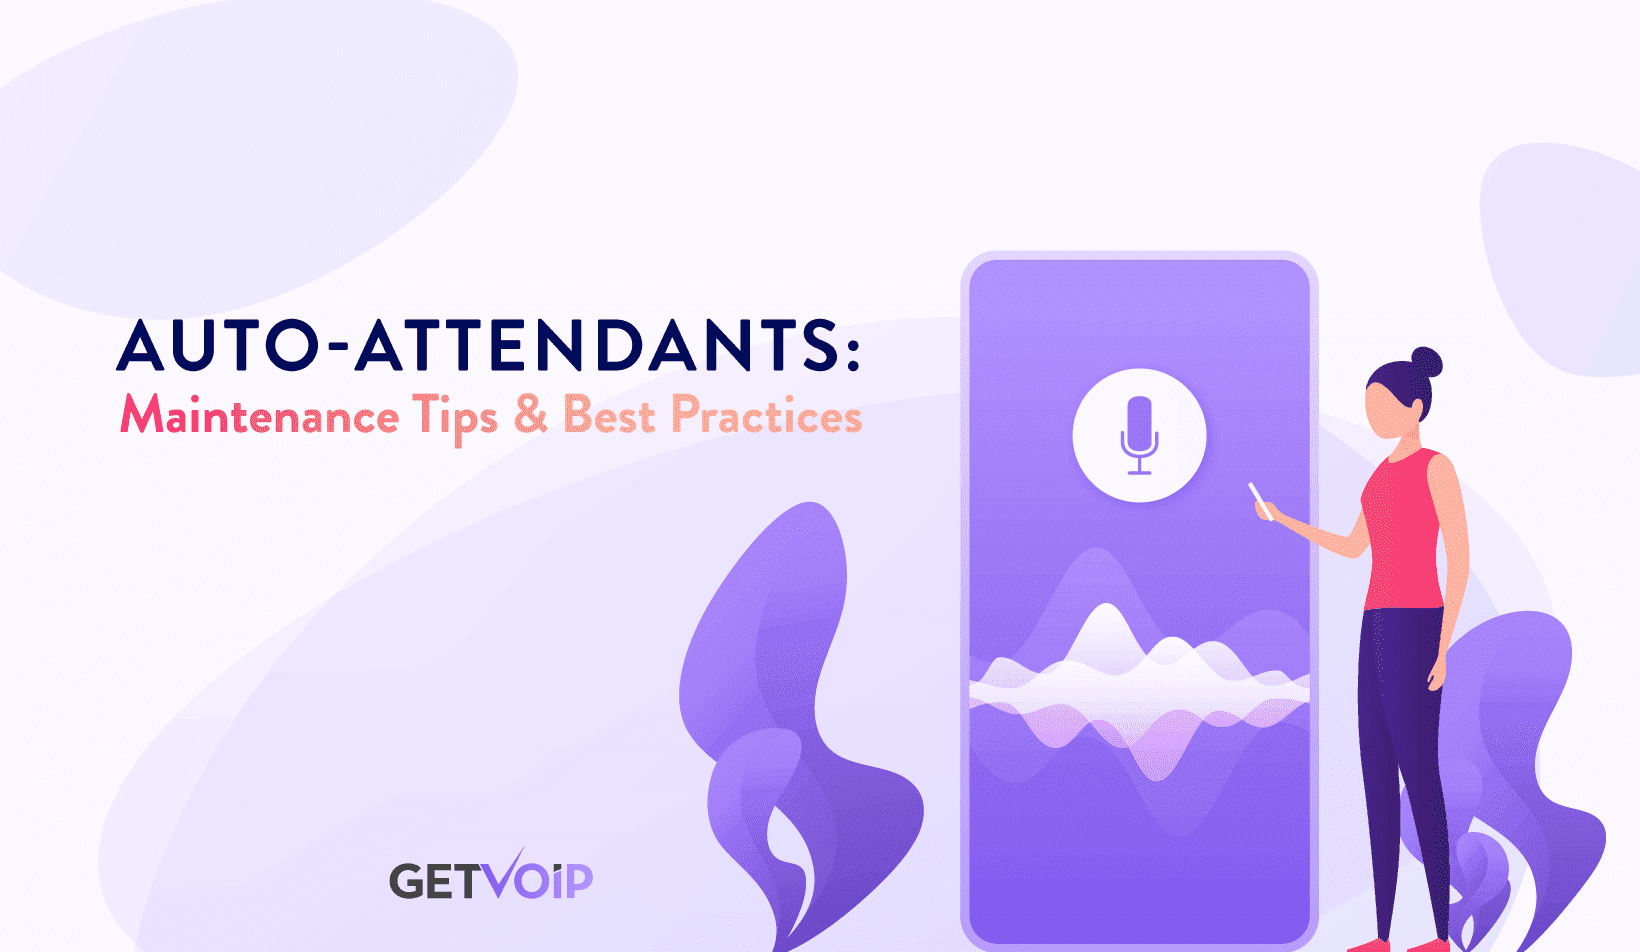 Auto-Attendants: Maintenance Tips & Best Practices